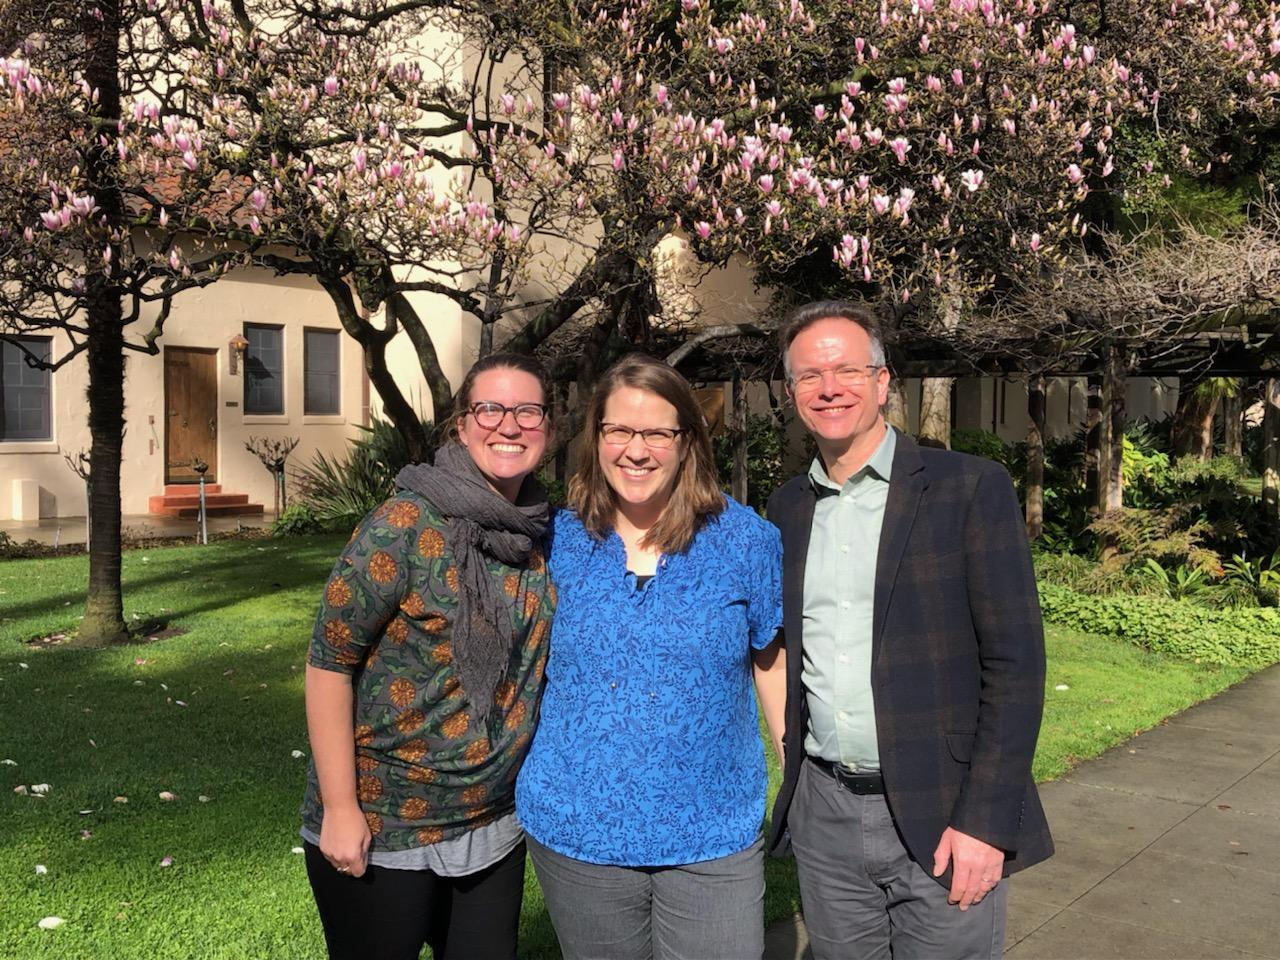 GSI director, abby mohaupt, and CreatureKind co-directors, Sarah Withrow King and David Clough, on the campus of Santa Clara University in San Jose, CA.